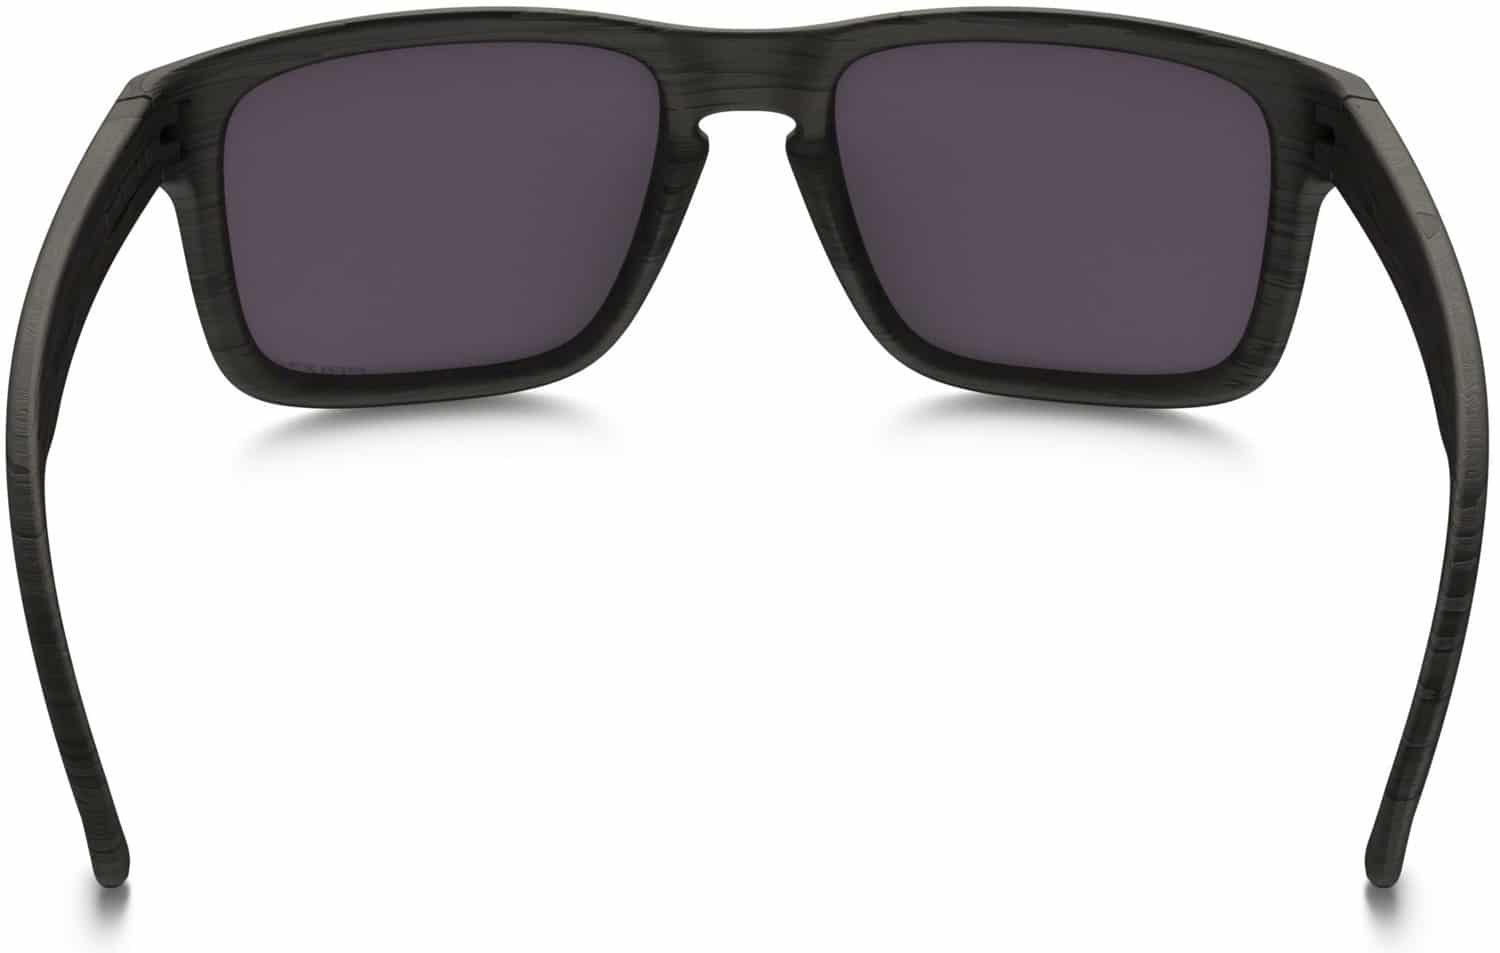 Holbrook Polarized Sunglasses  oakley holbrook polarized sunglasses free shipping